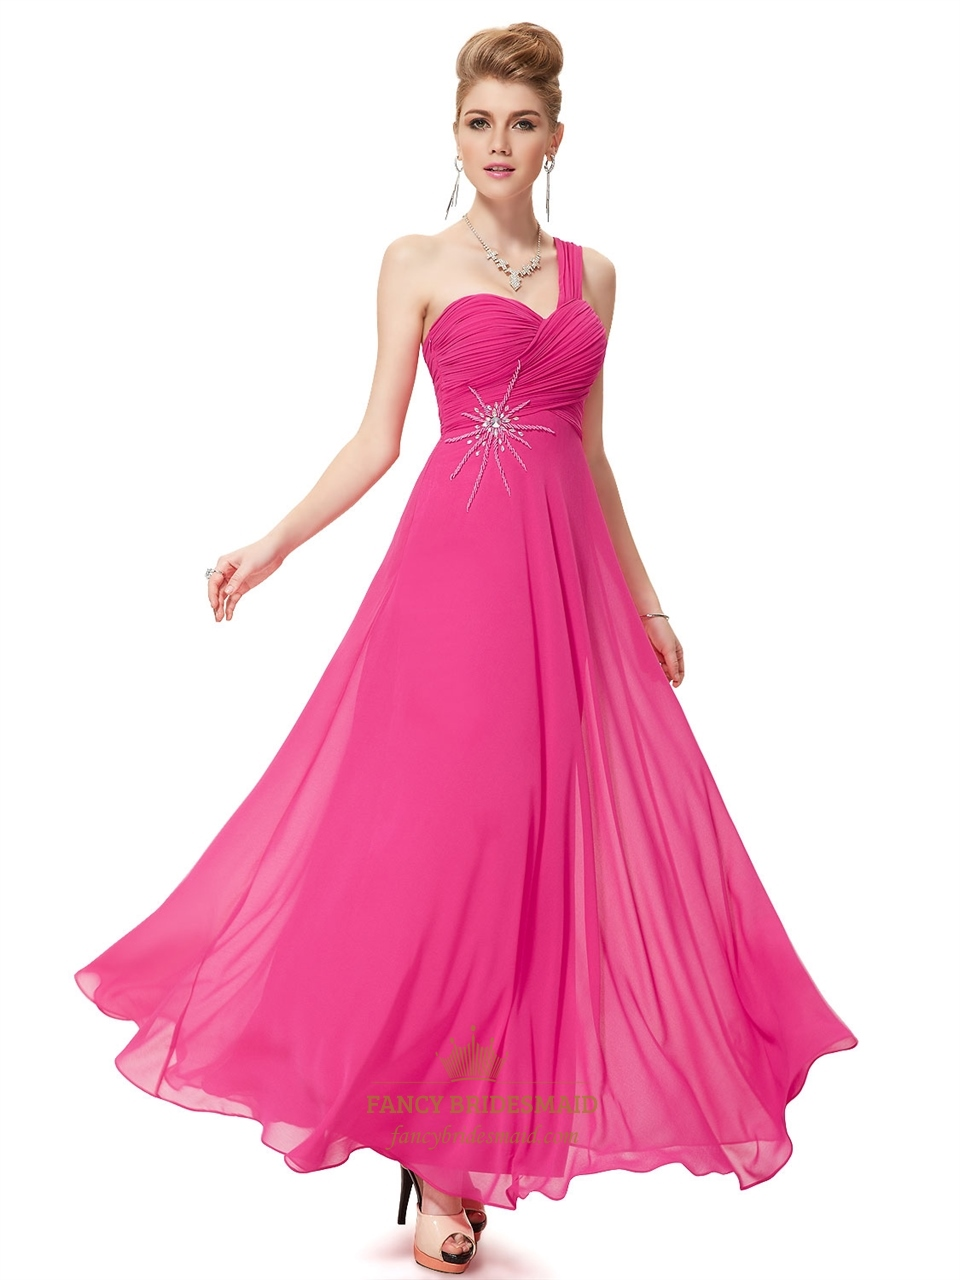 9143cbf0007dc Hot Pink Chiffon One Shoulder Long Bridesmaid Dress With Beaded Detail SKU  -NW1465